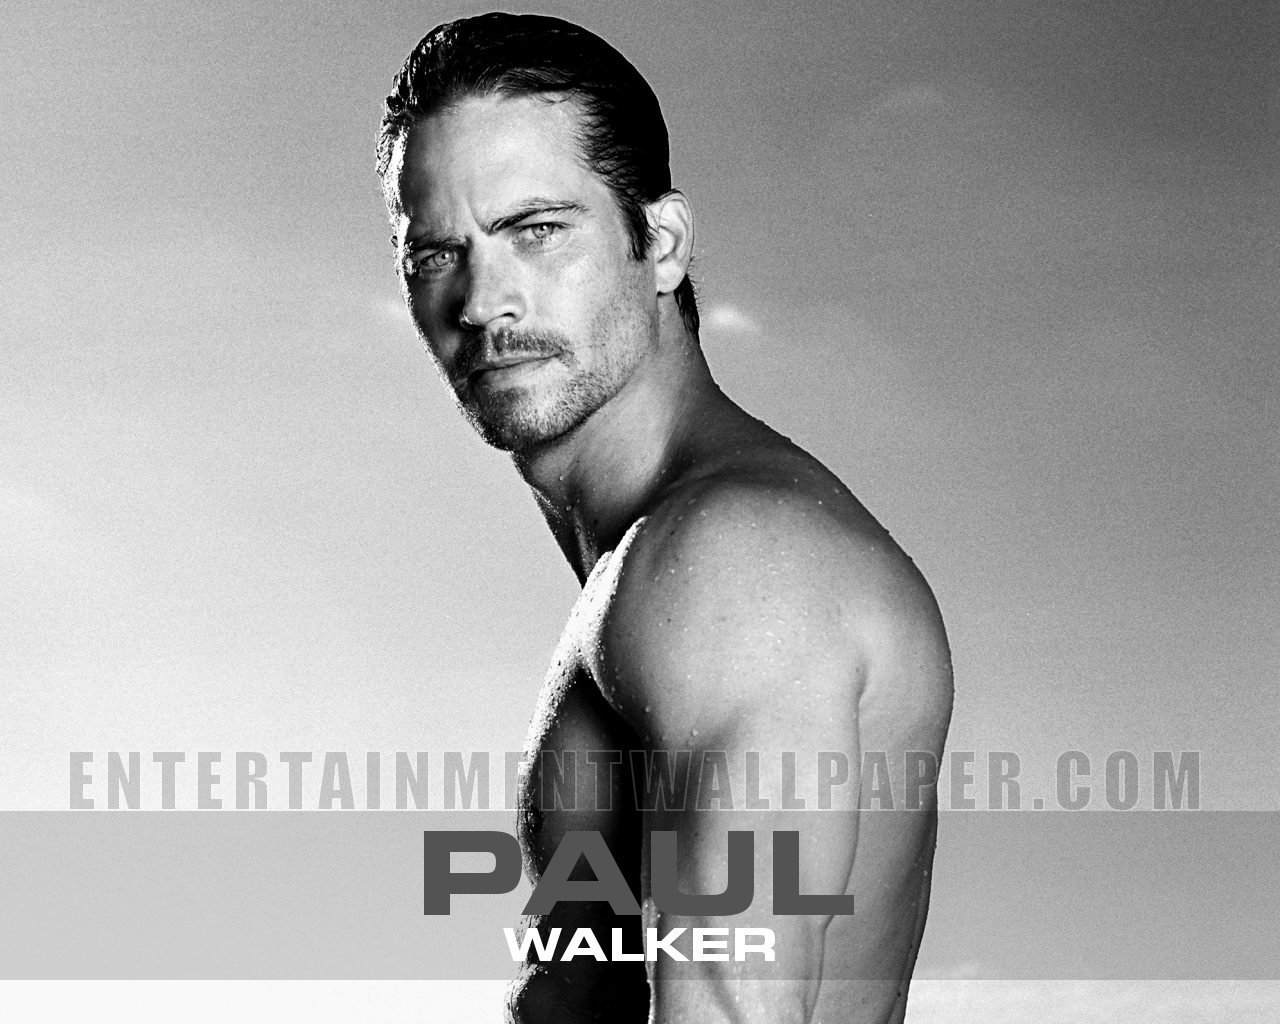 Paul Walker - paul-walker wallpaper